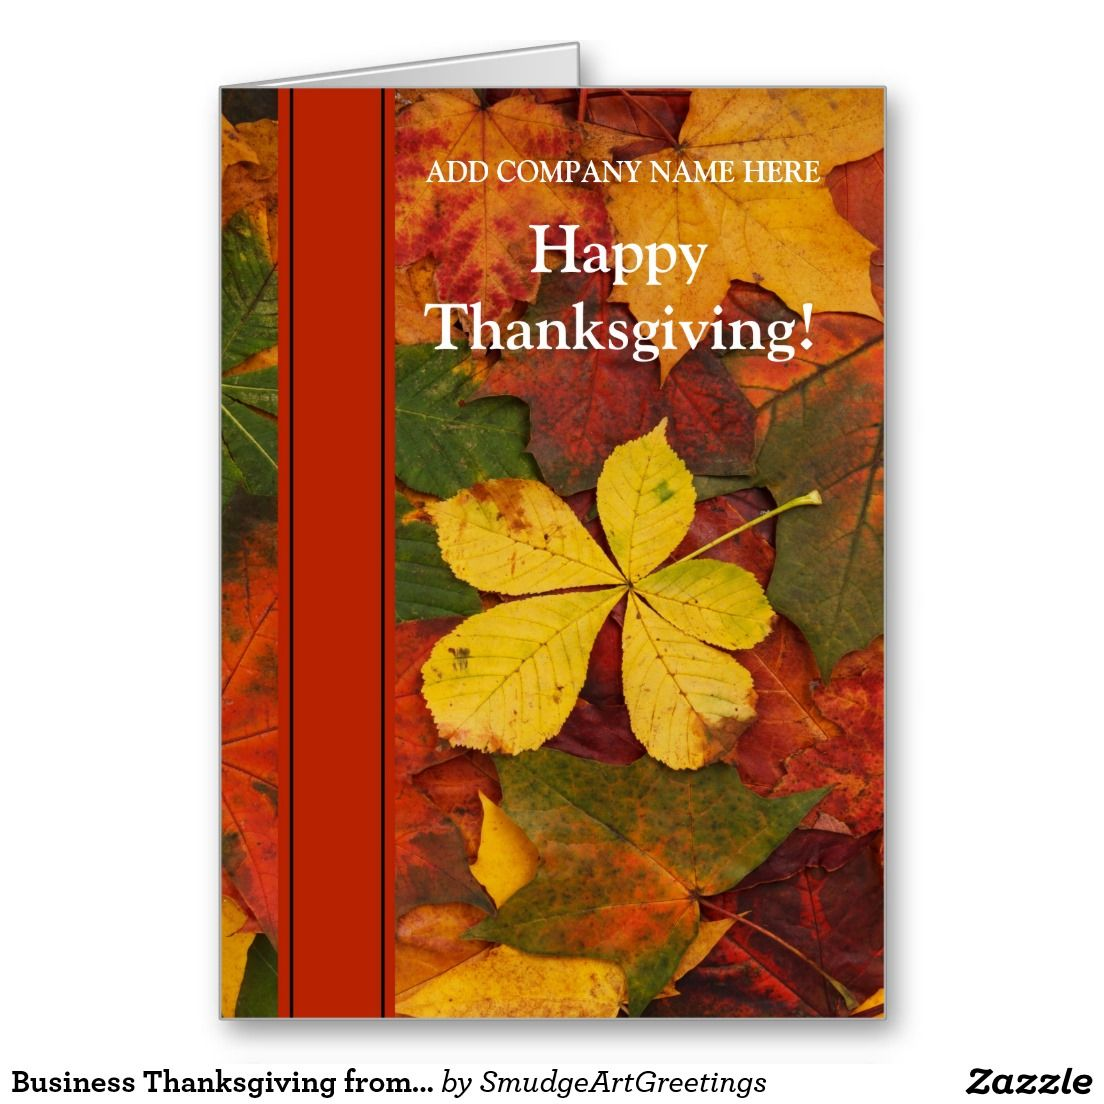 Business corporate thanksgiving holiday card business business thanksgiving from company fall leaves greeting card m4hsunfo